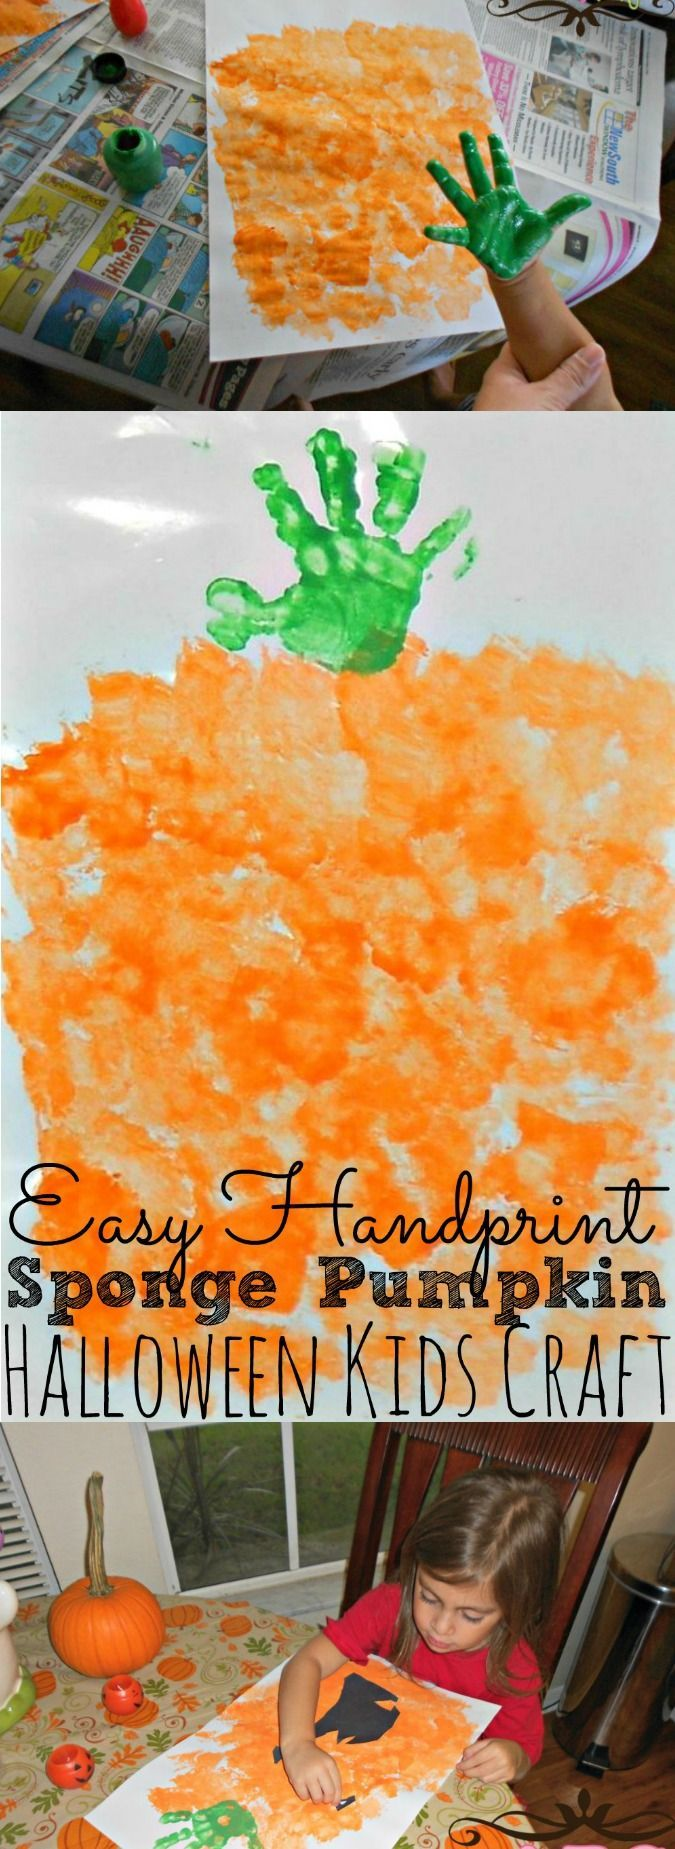 Easy Handprint Sponge Pumpkin Kids Craft - simplytodaylife.com